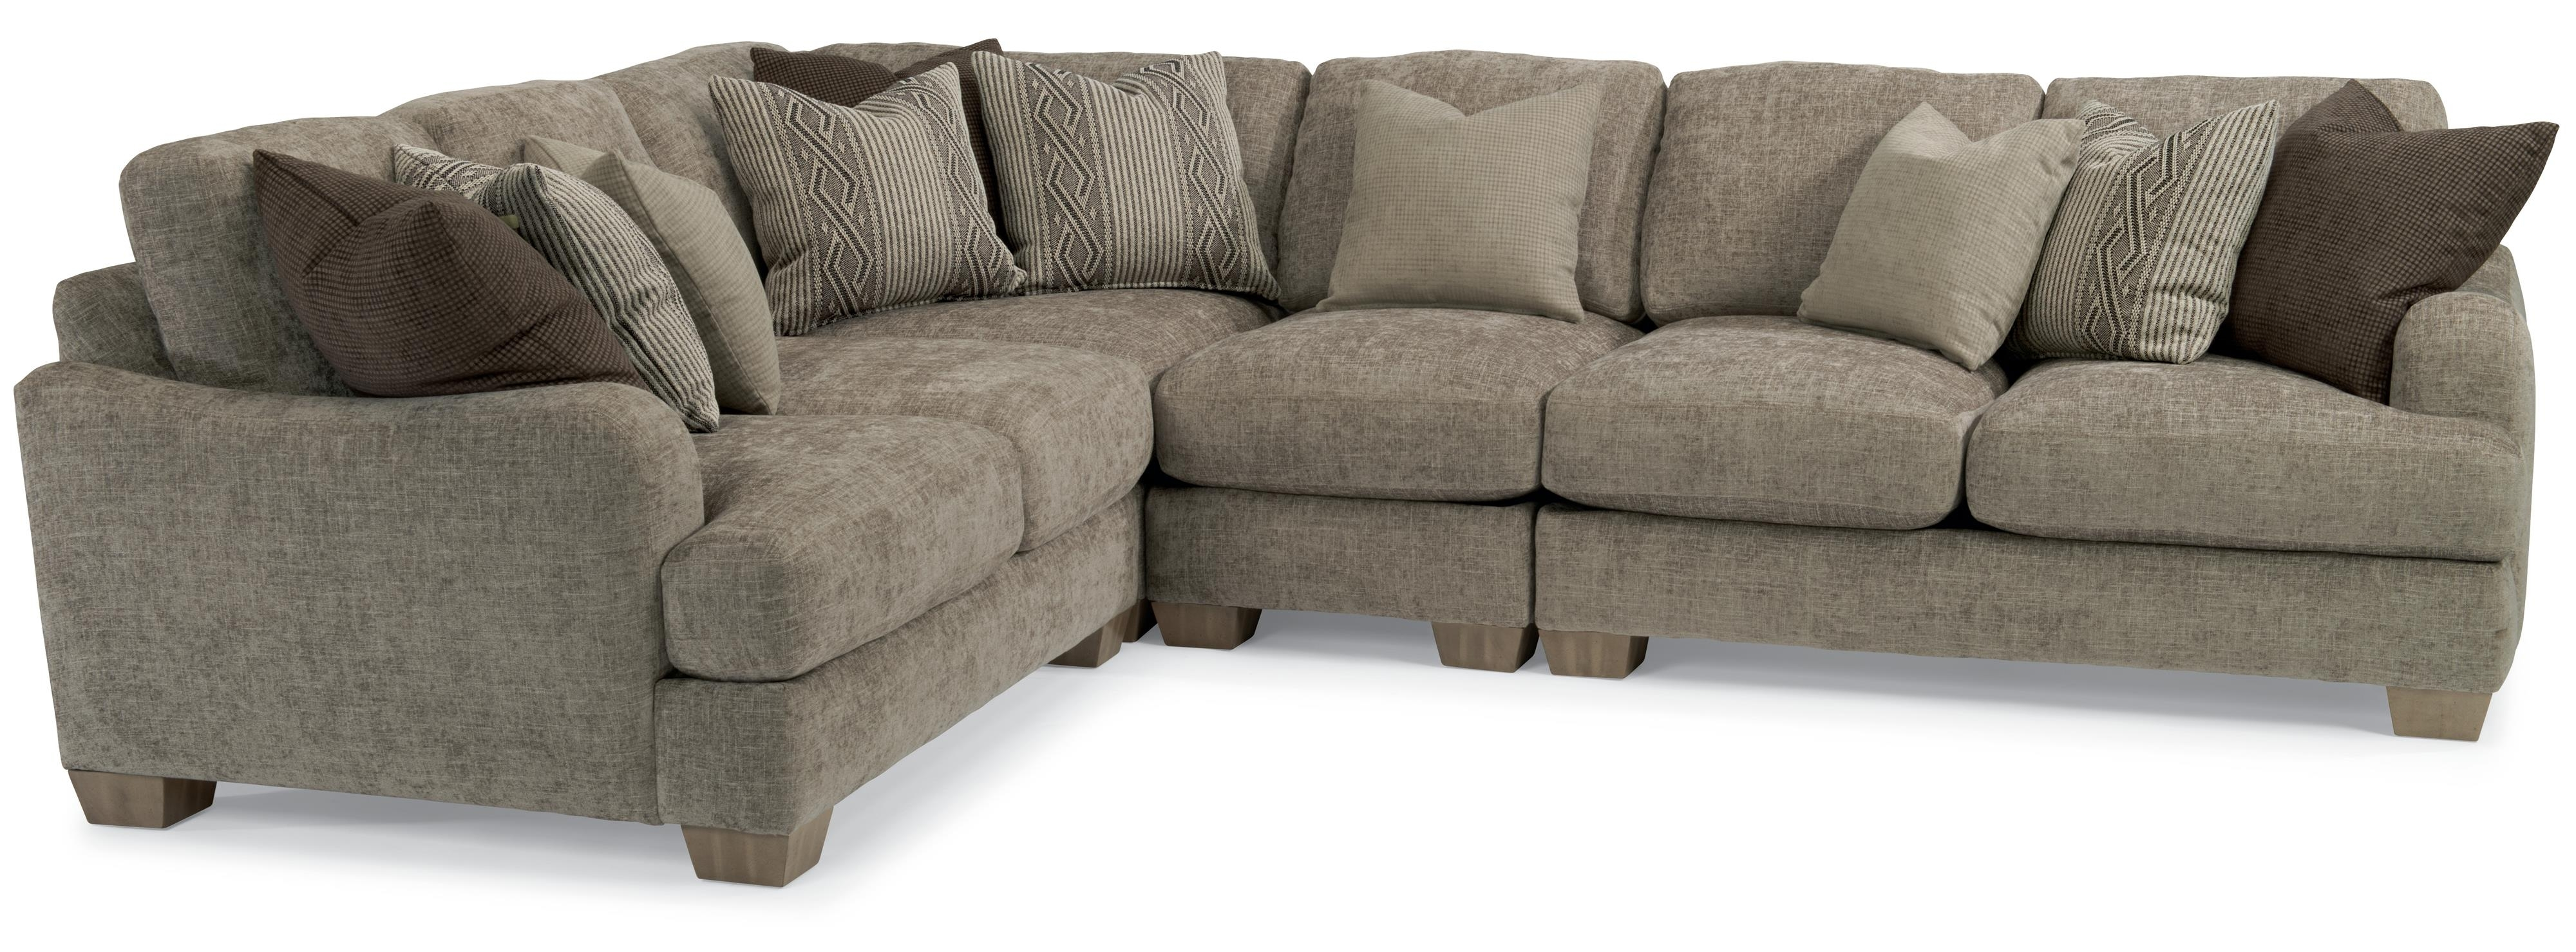 Vanessa Sectional Sofa With Loose Pillow Backflexsteel | Living Intended For Johnson City Tn Sectional Sofas (View 6 of 10)